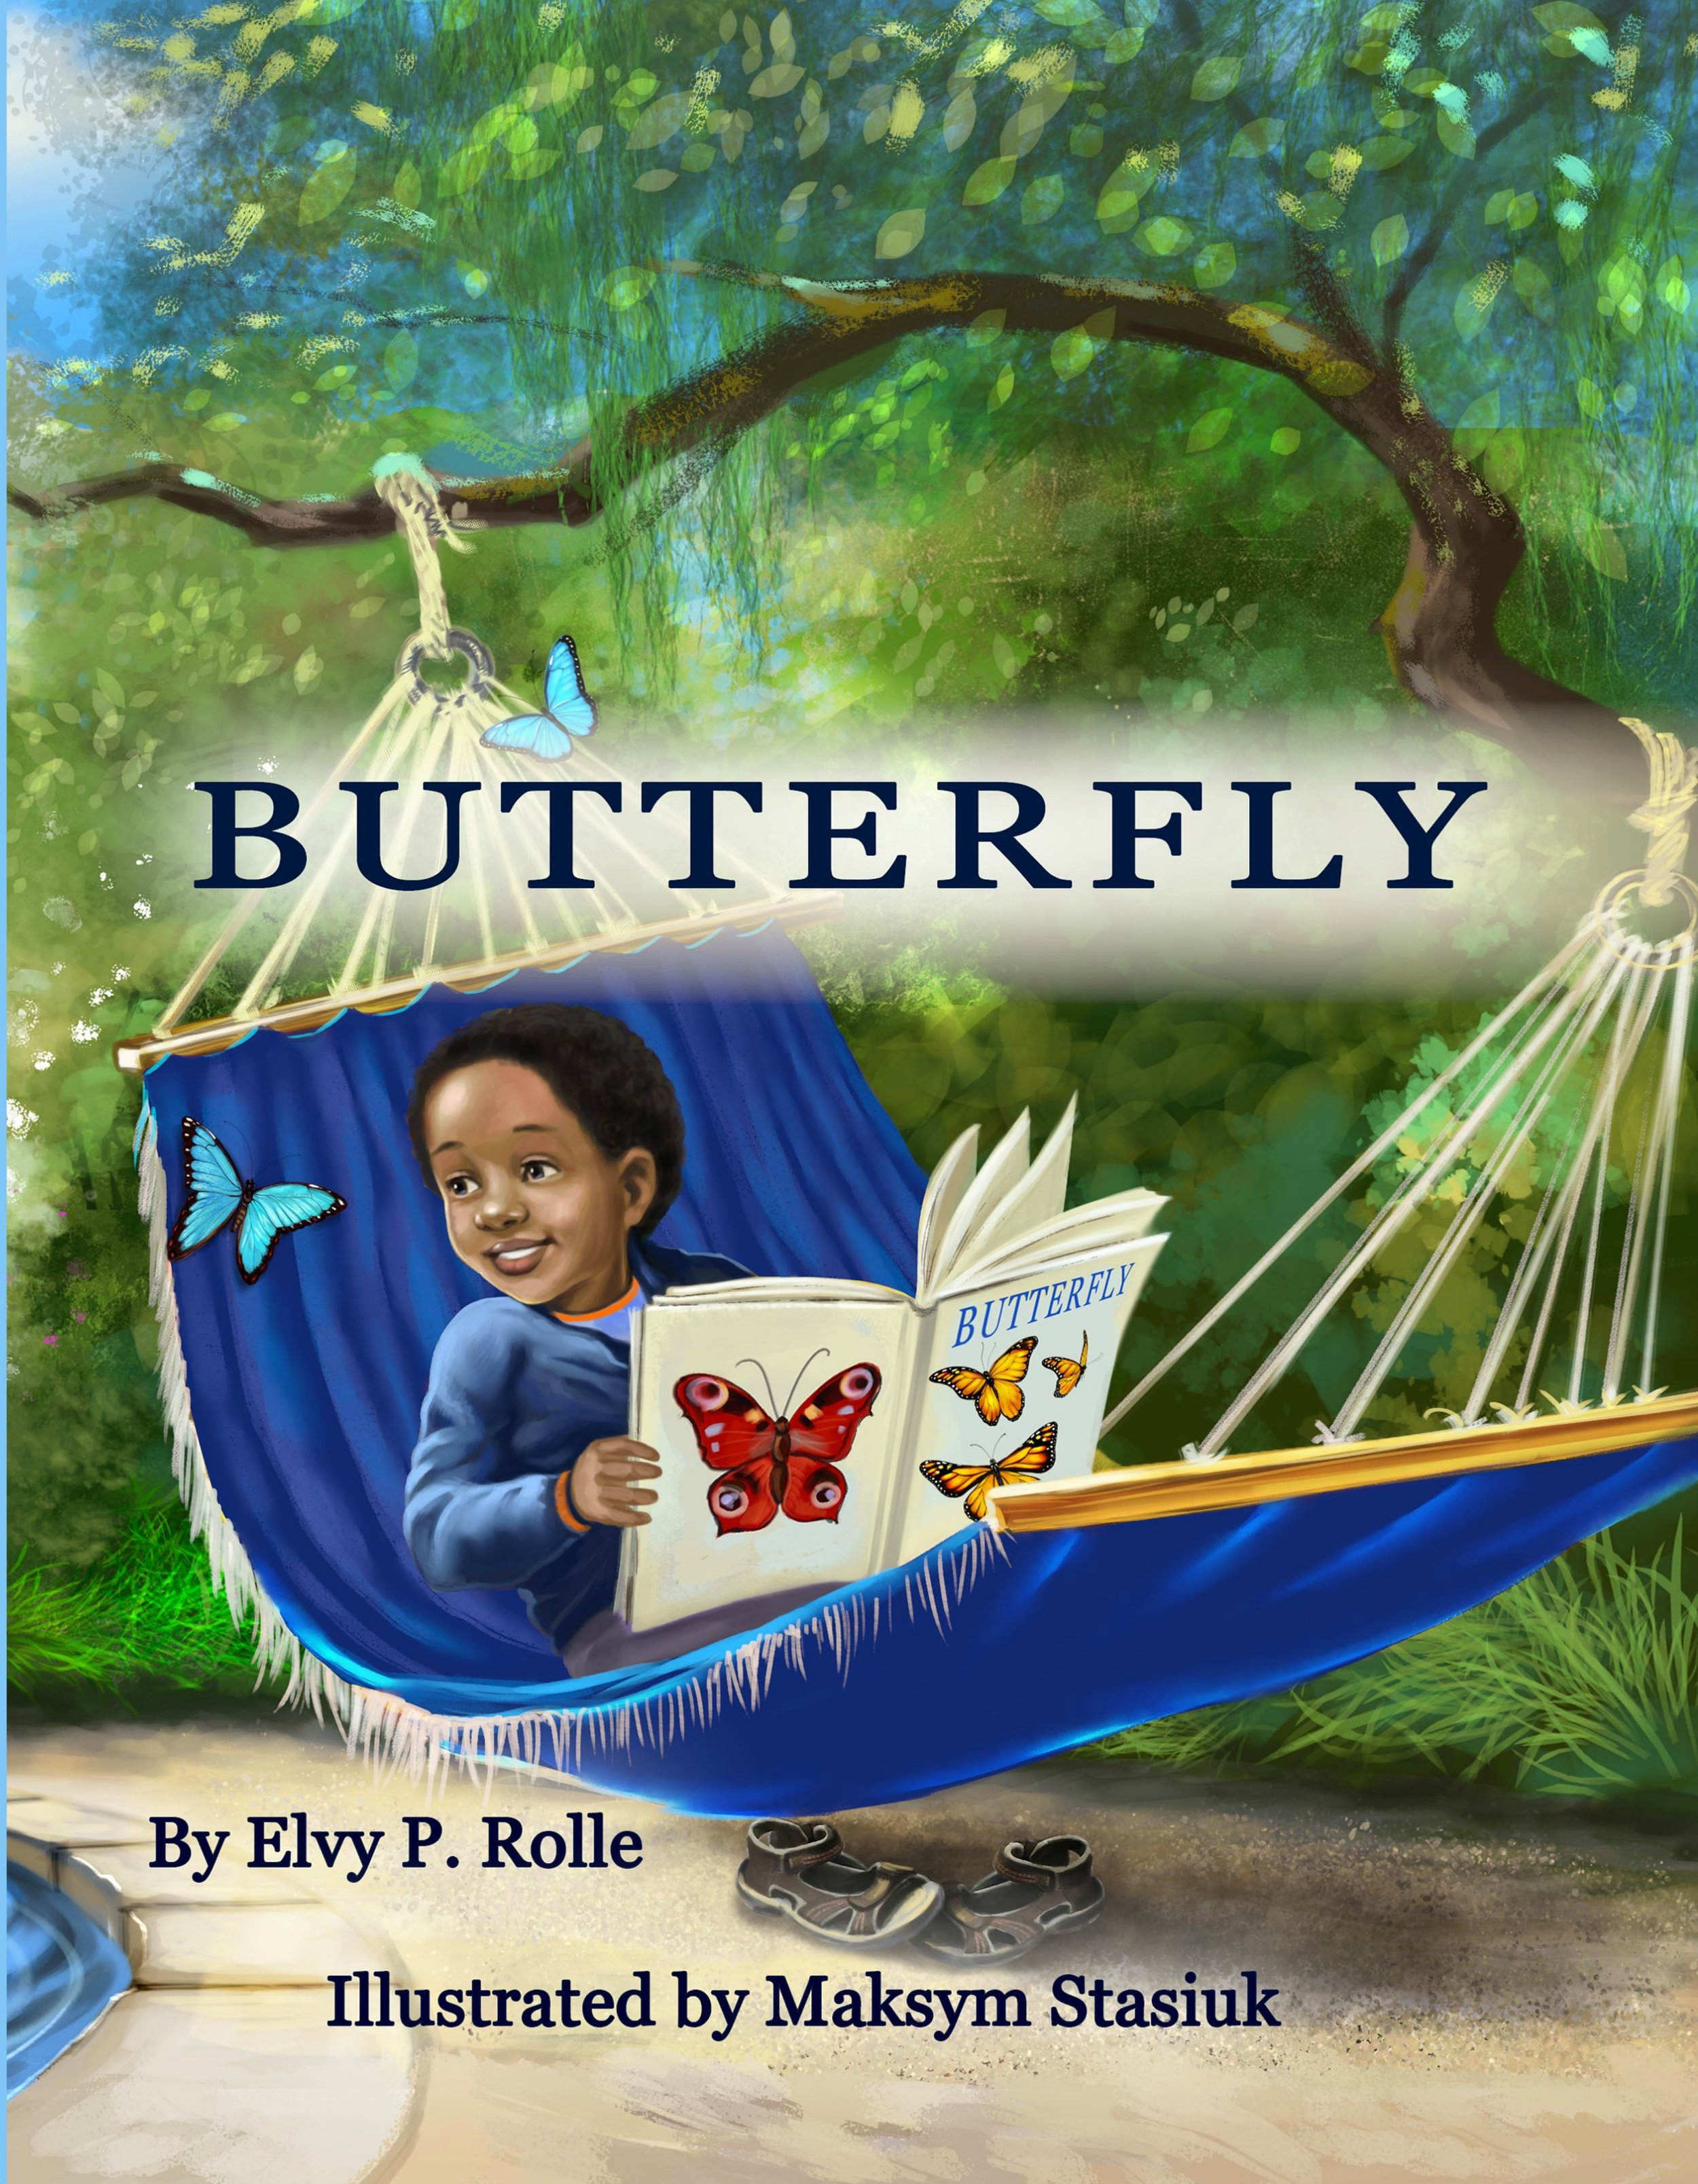 Copy of Revised-Butterfly-Front-Cover.jpg